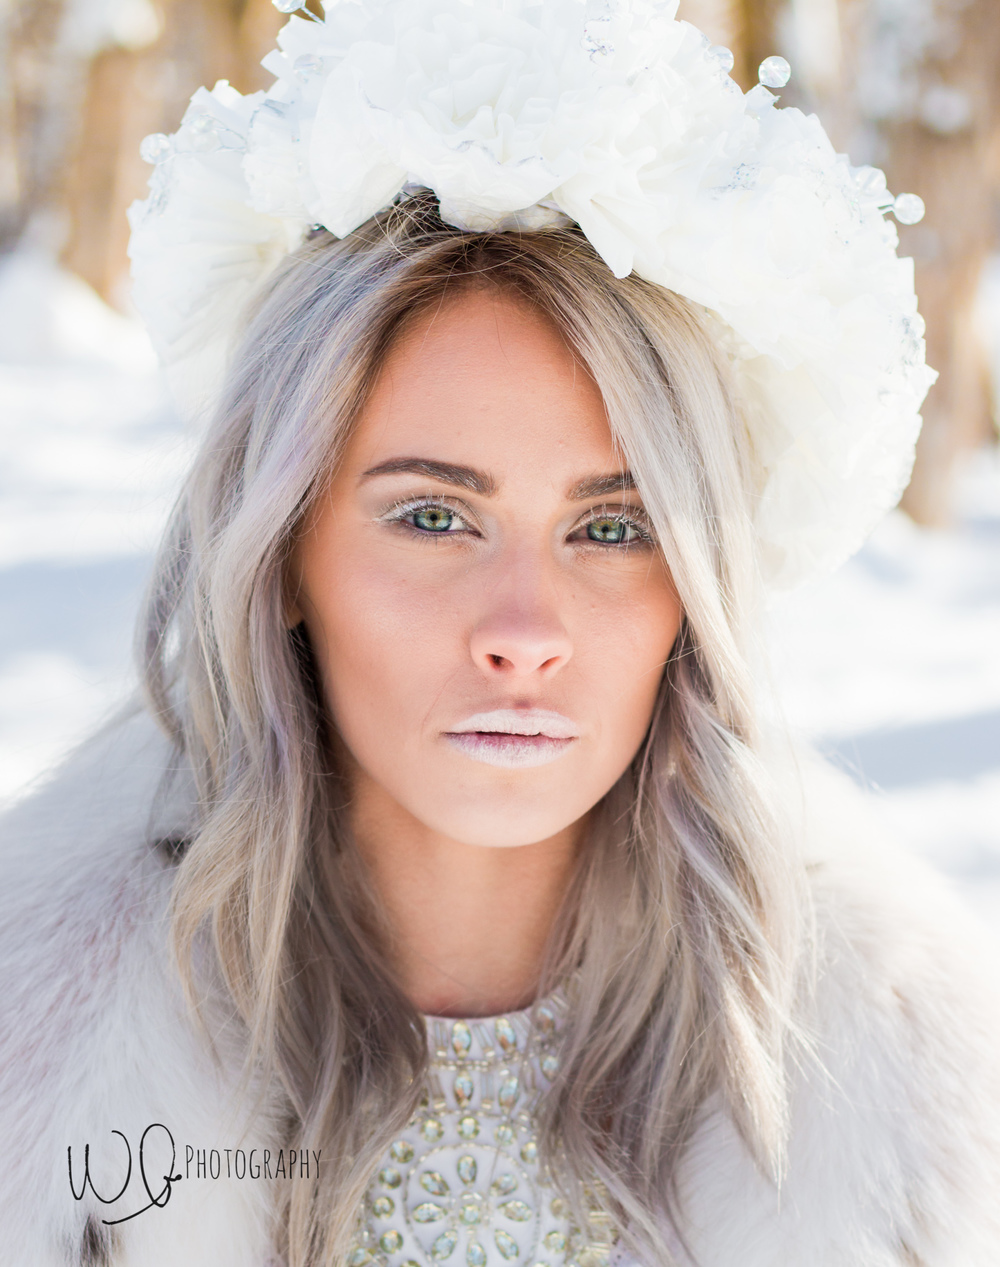 Ice queen photo shoot